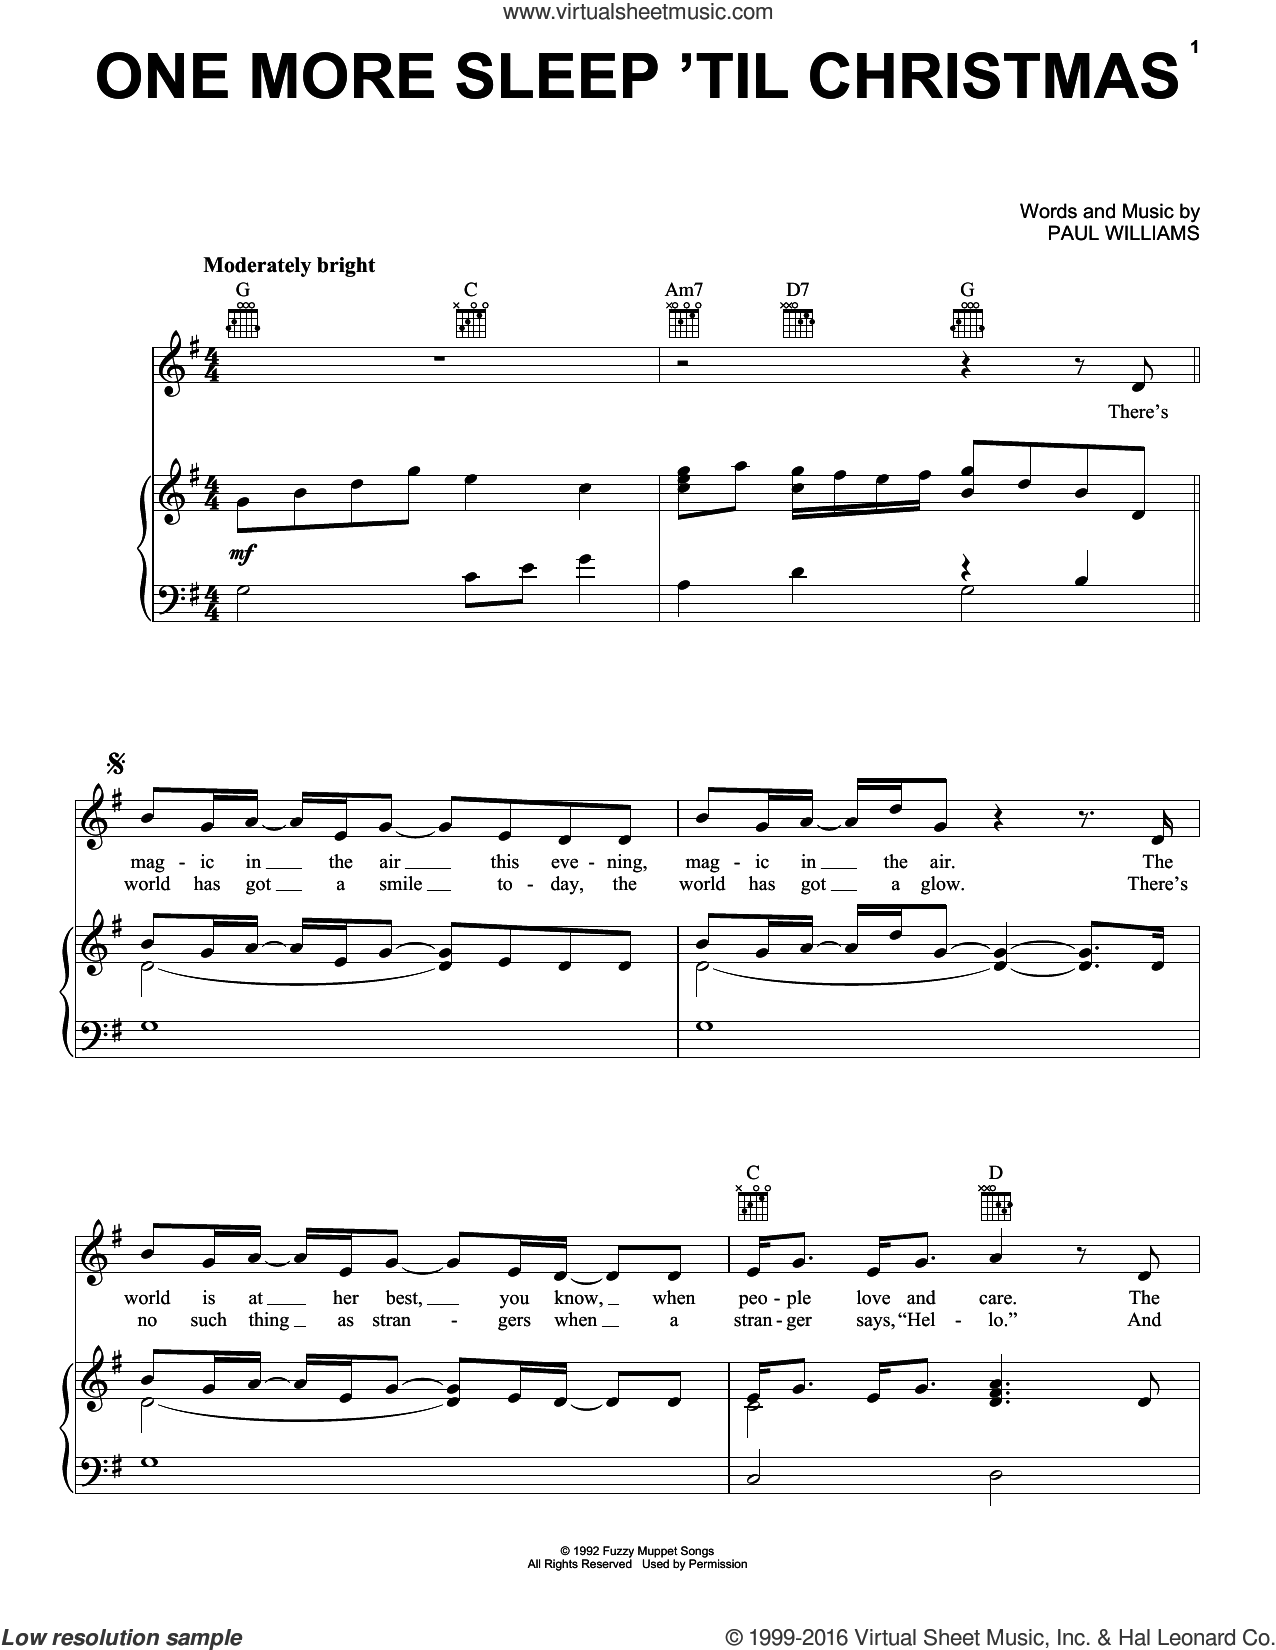 One More Sleep 'Til Christmas sheet music for voice, piano or guitar by Paul Williams, intermediate skill level